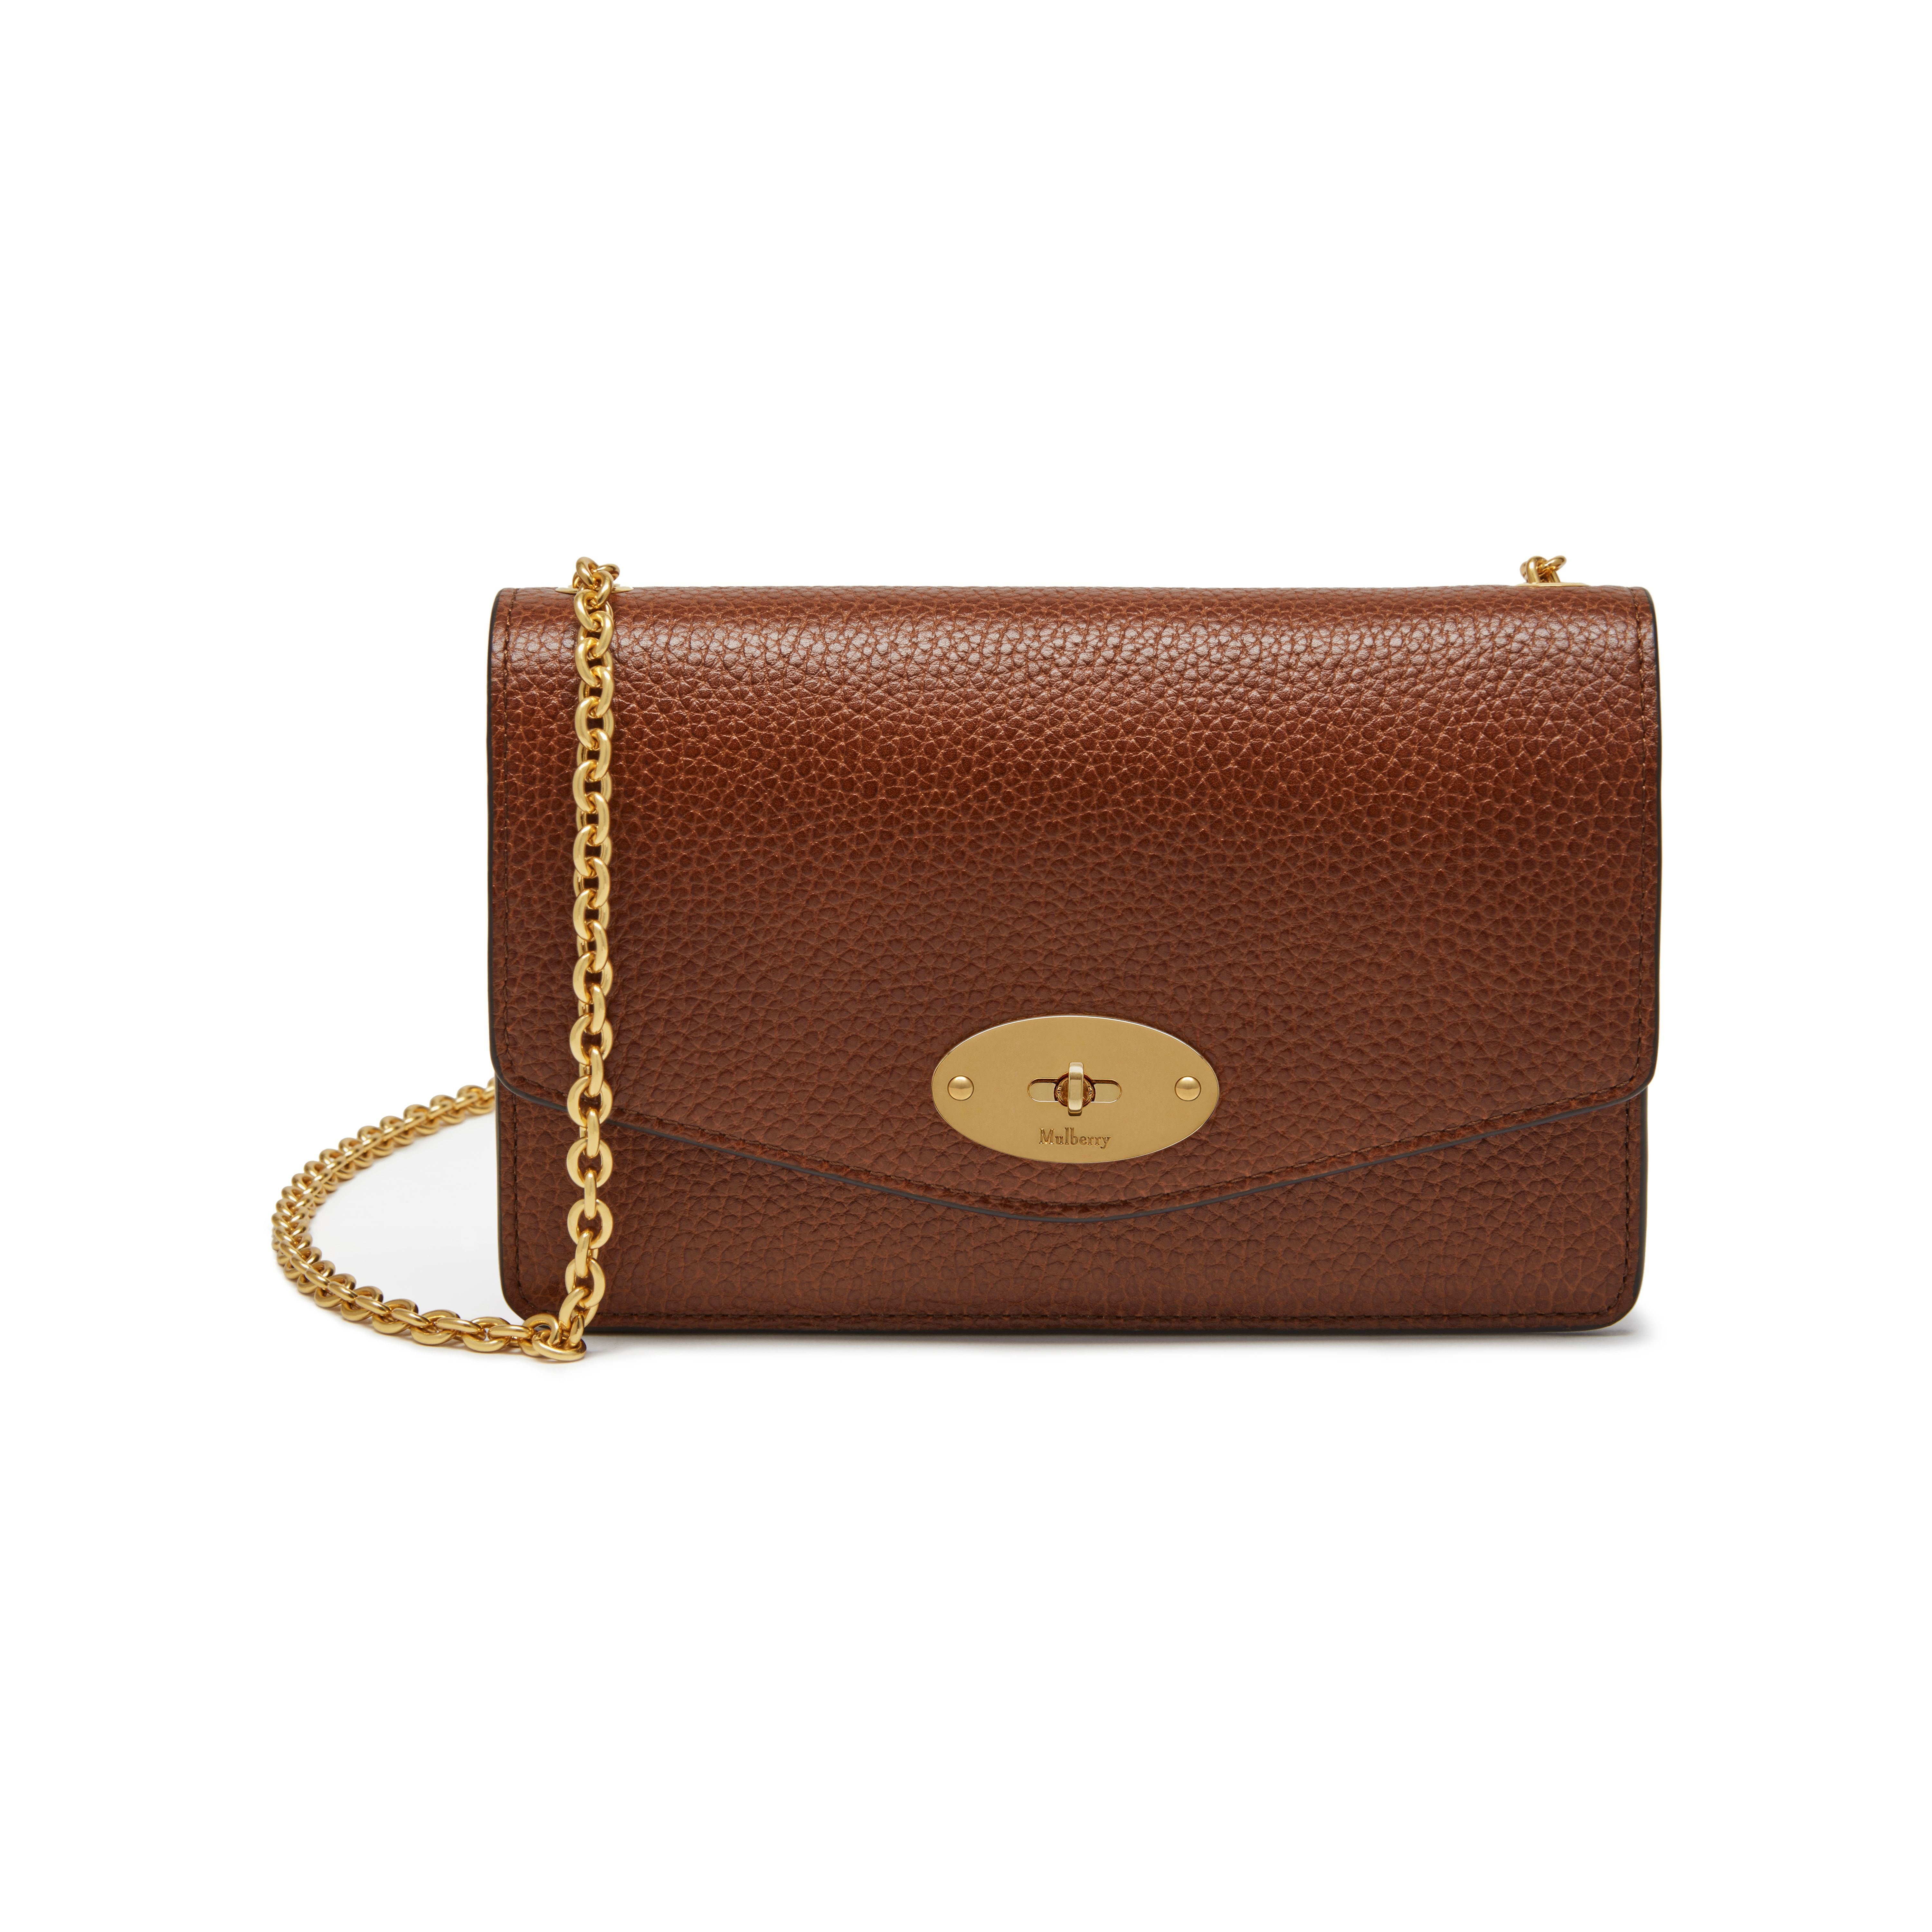 68302352f4 Shop the Amberley Clutch Bag in Dark Blush Smooth Calf Leather at Mulberry.com.  A new addition to the equestrian-inspired Amb… | Mulberry Gifts For Her ...